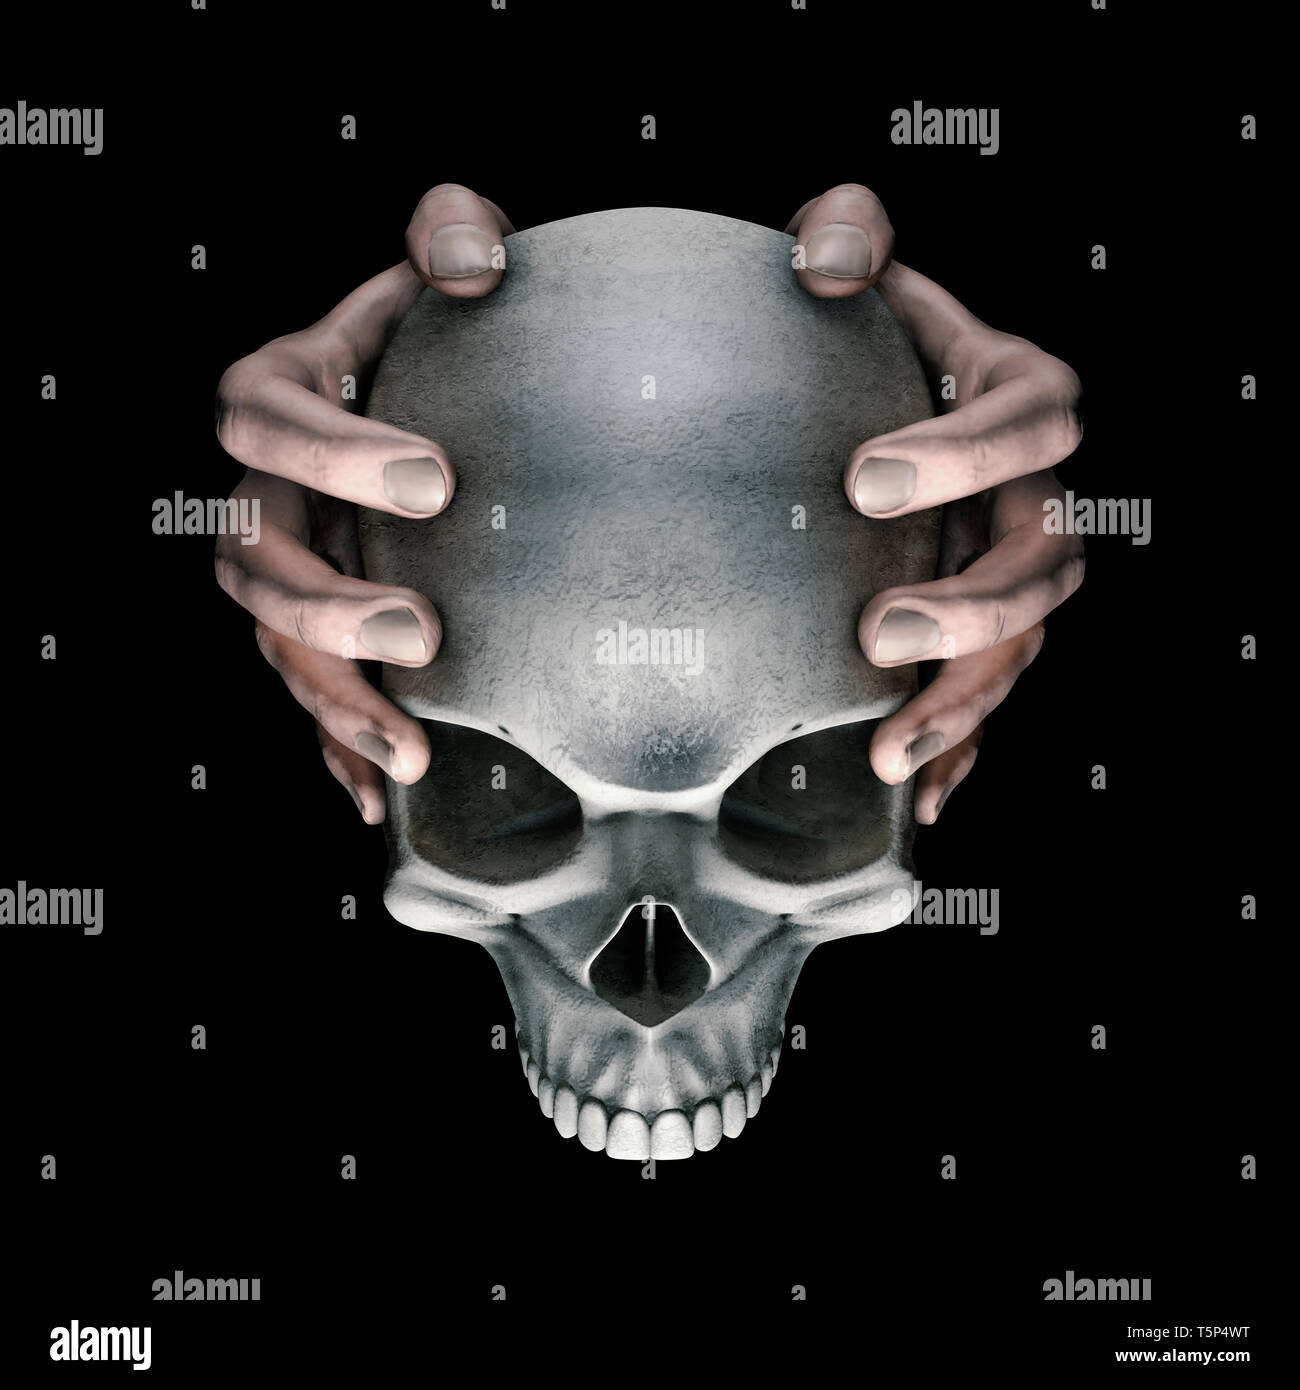 Dark thoughts horror skull / 3D illustration of hands holding scary